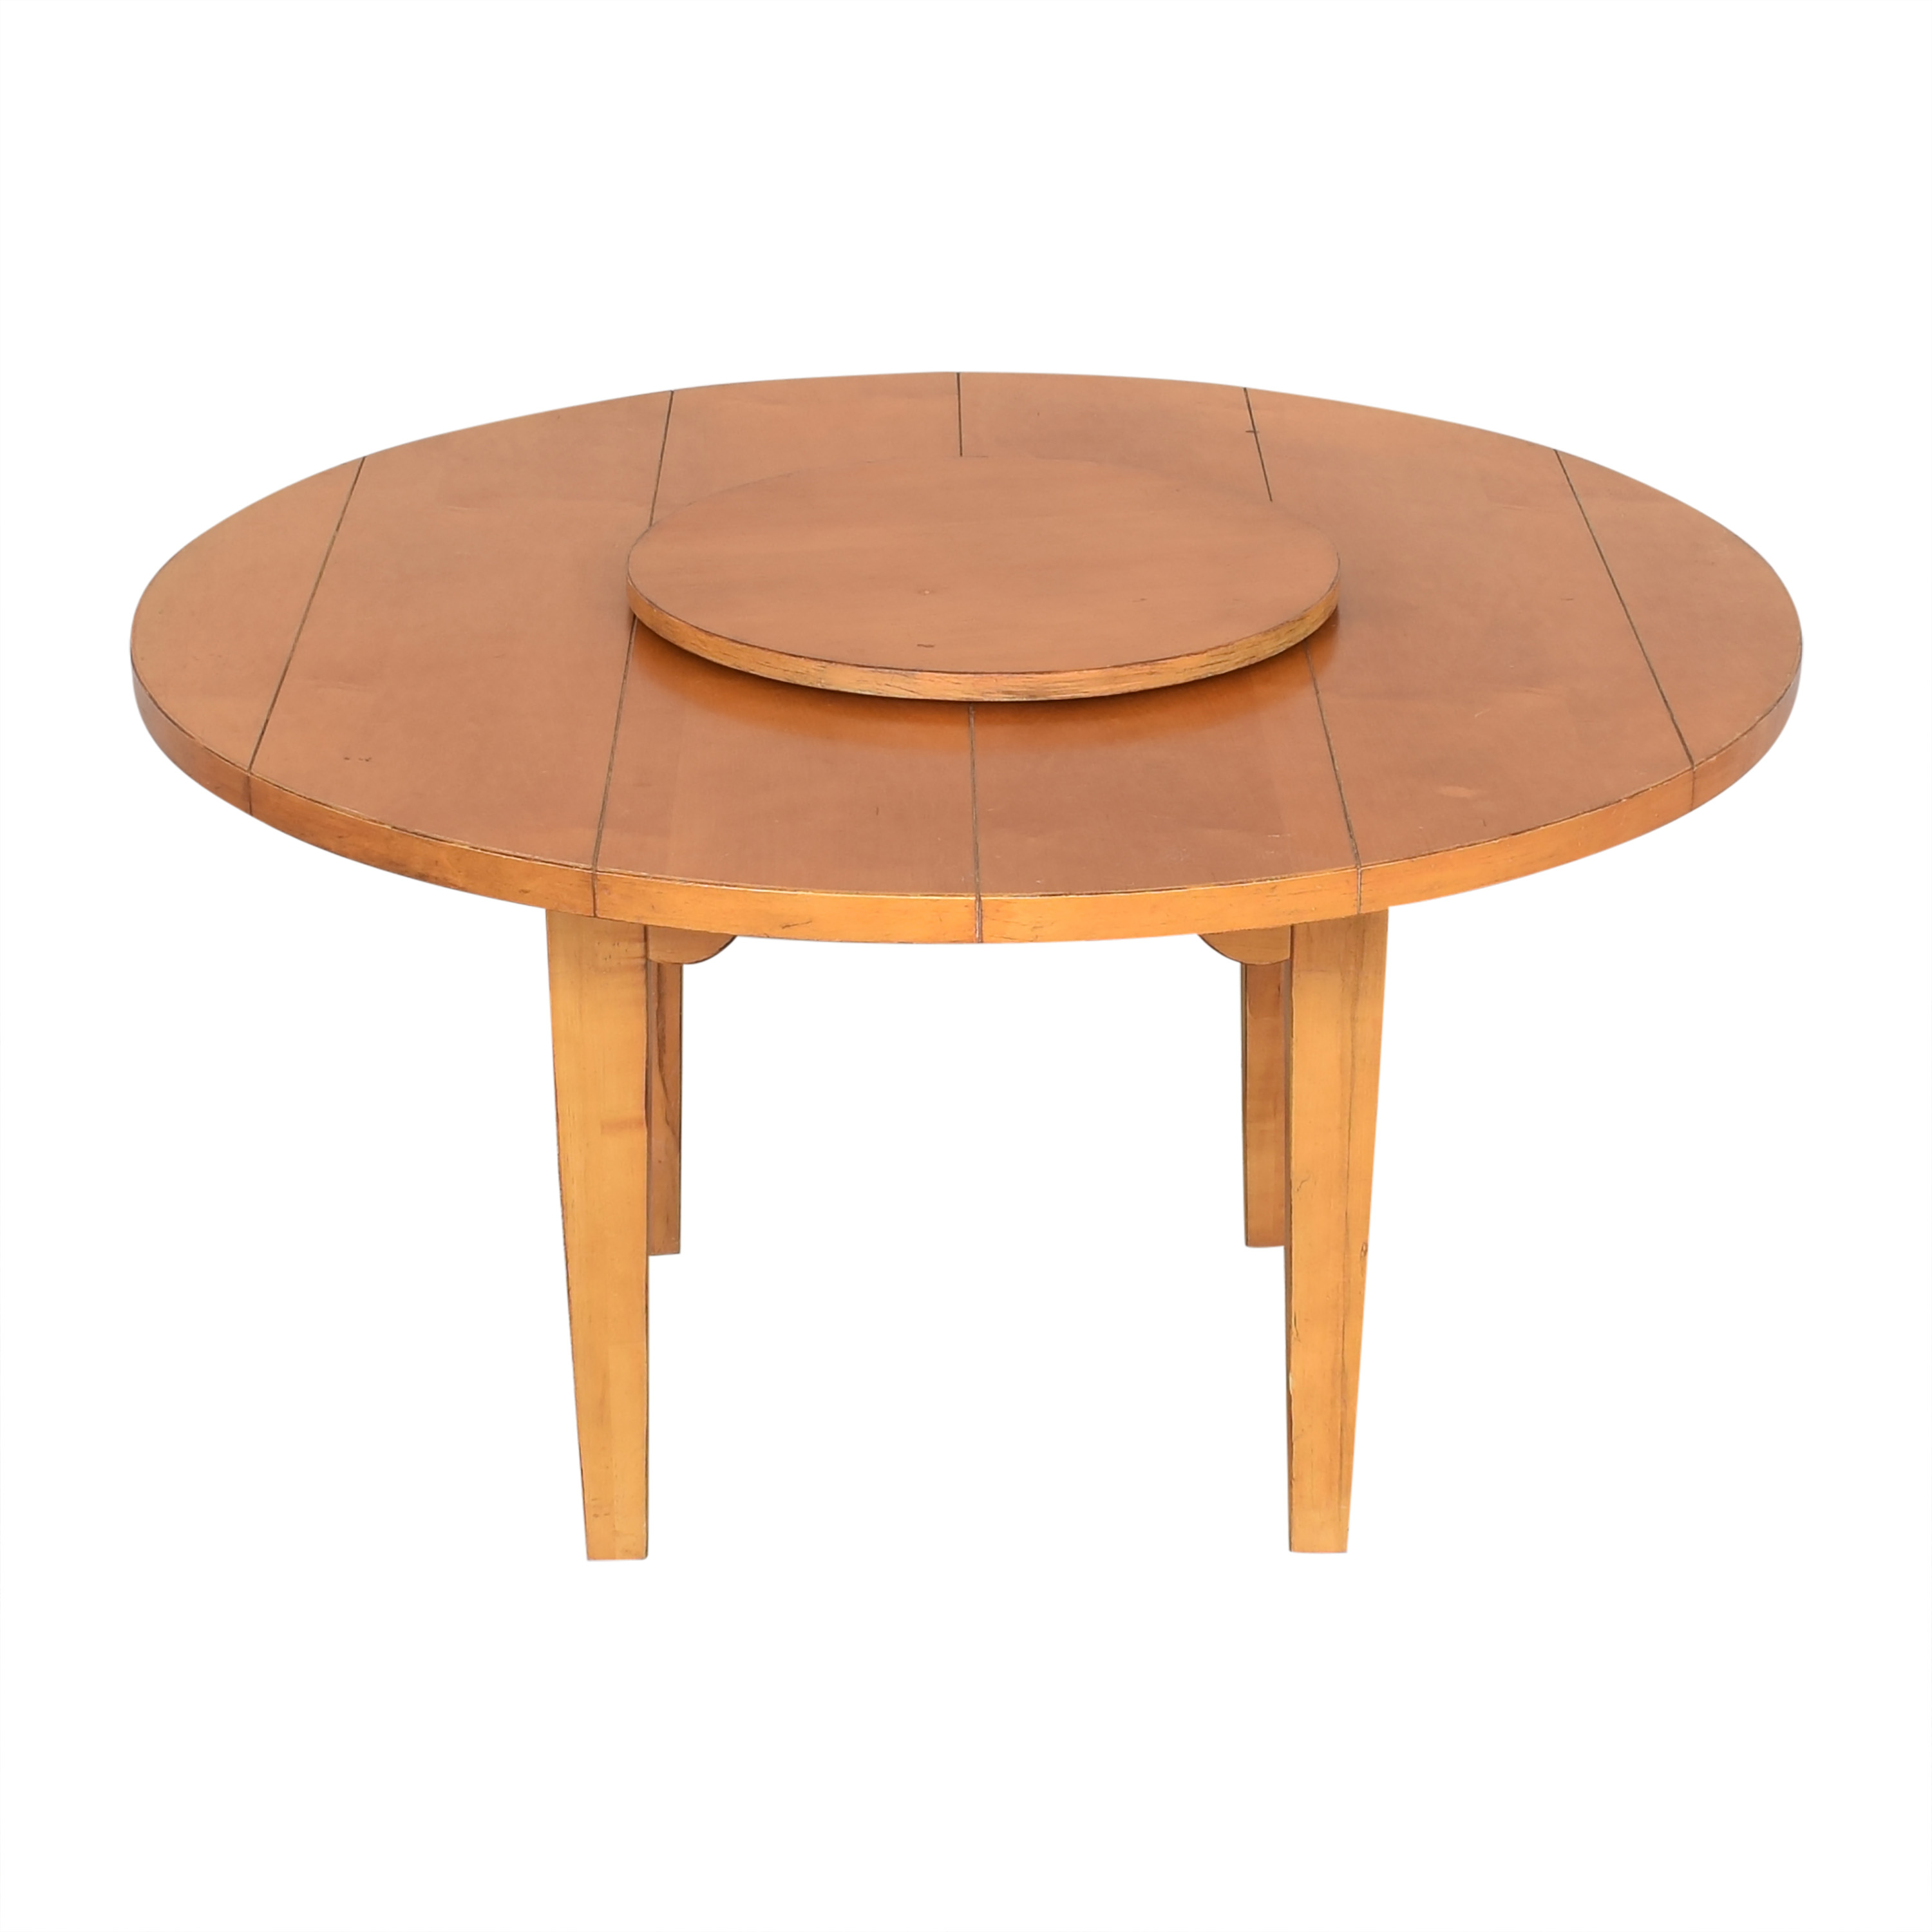 Drexel Heritage Round Dining Table with Lazy Susan sale